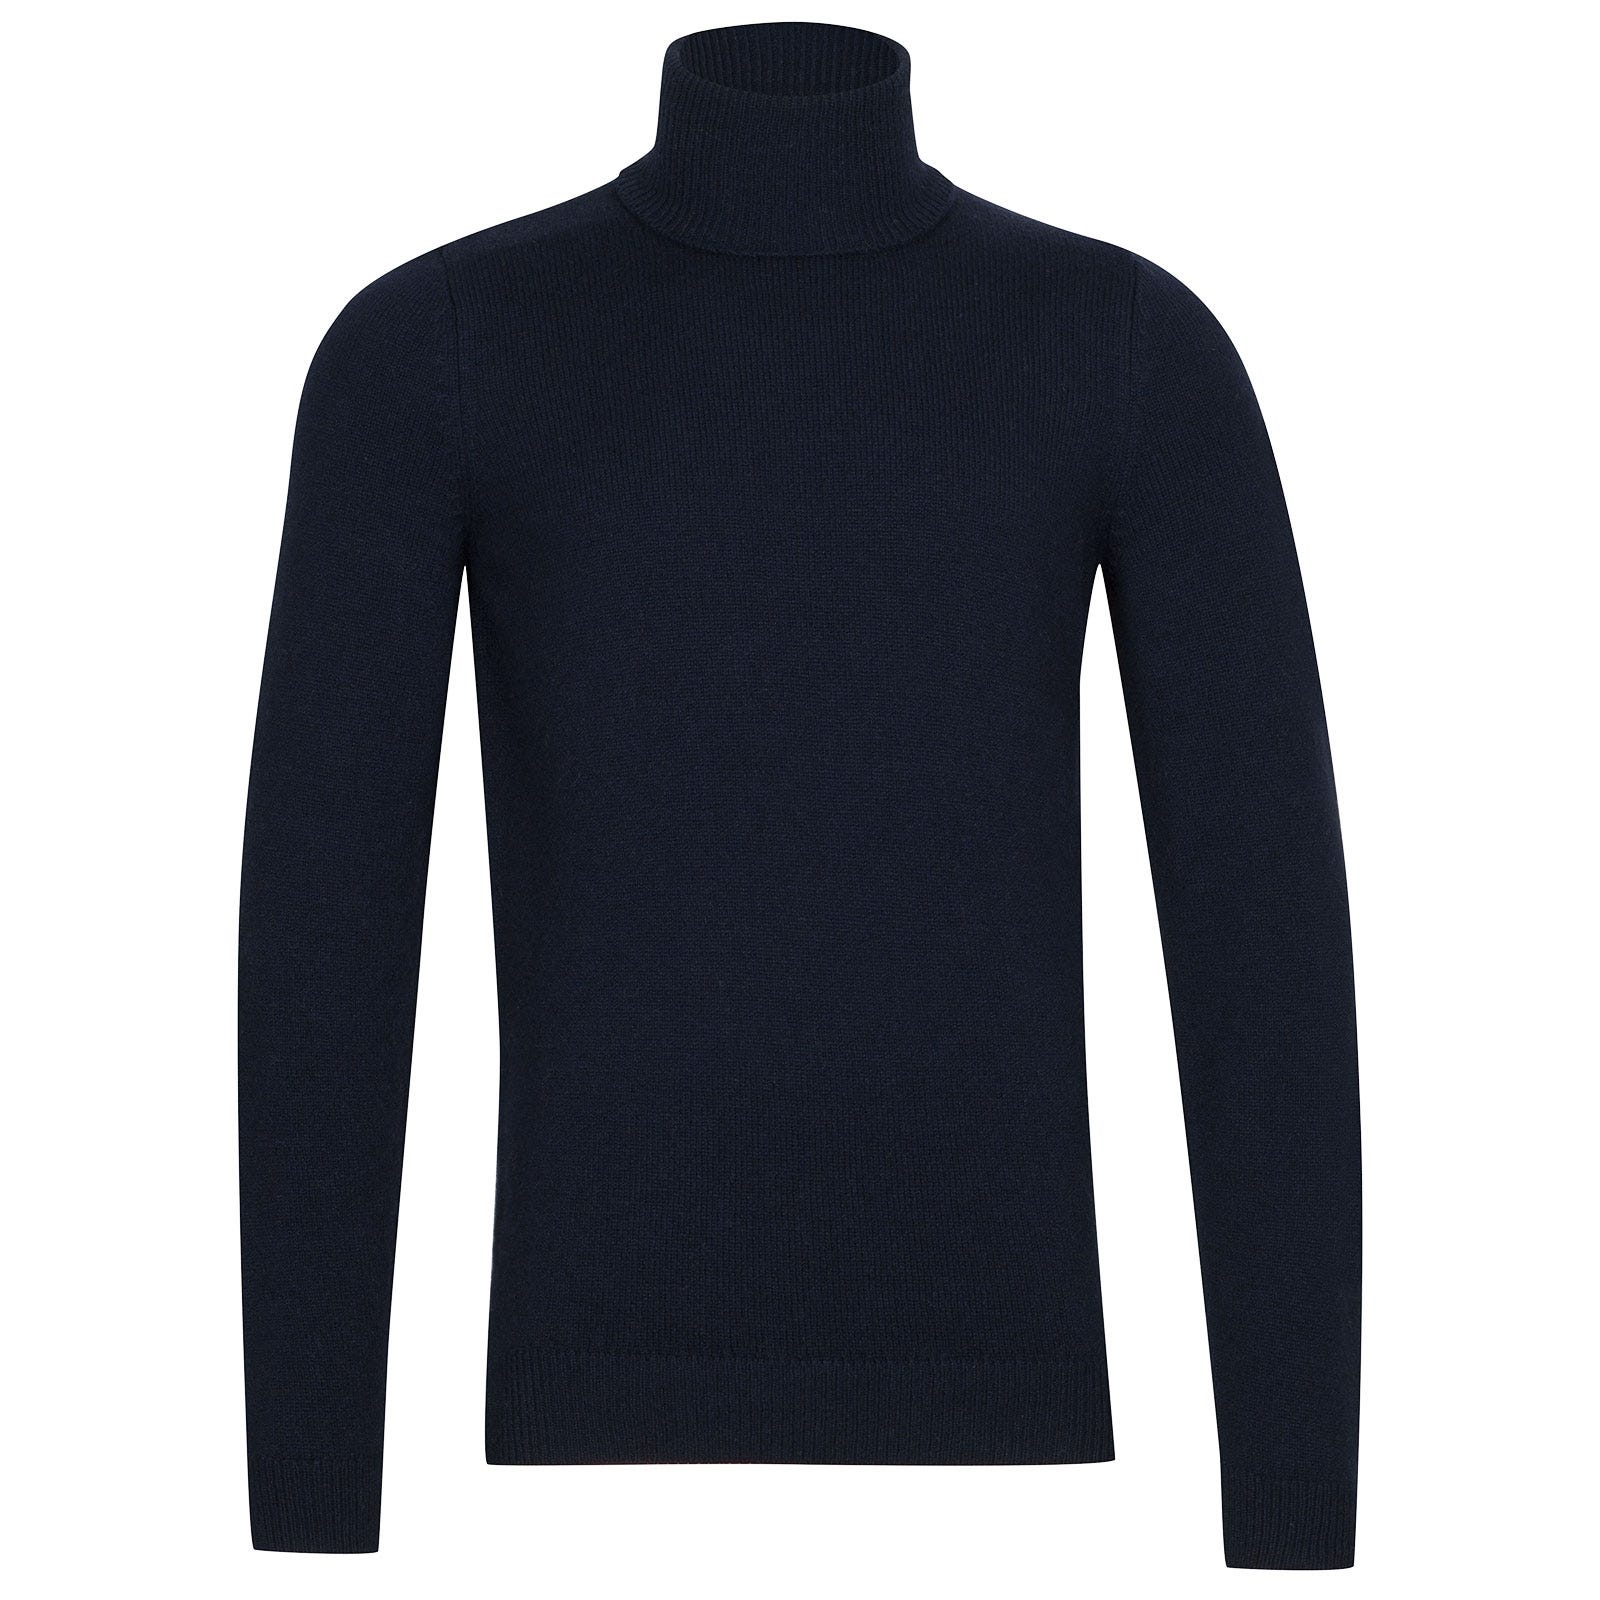 John Smedley Zachary Wool and Cashmere Pullover in Midnight-M